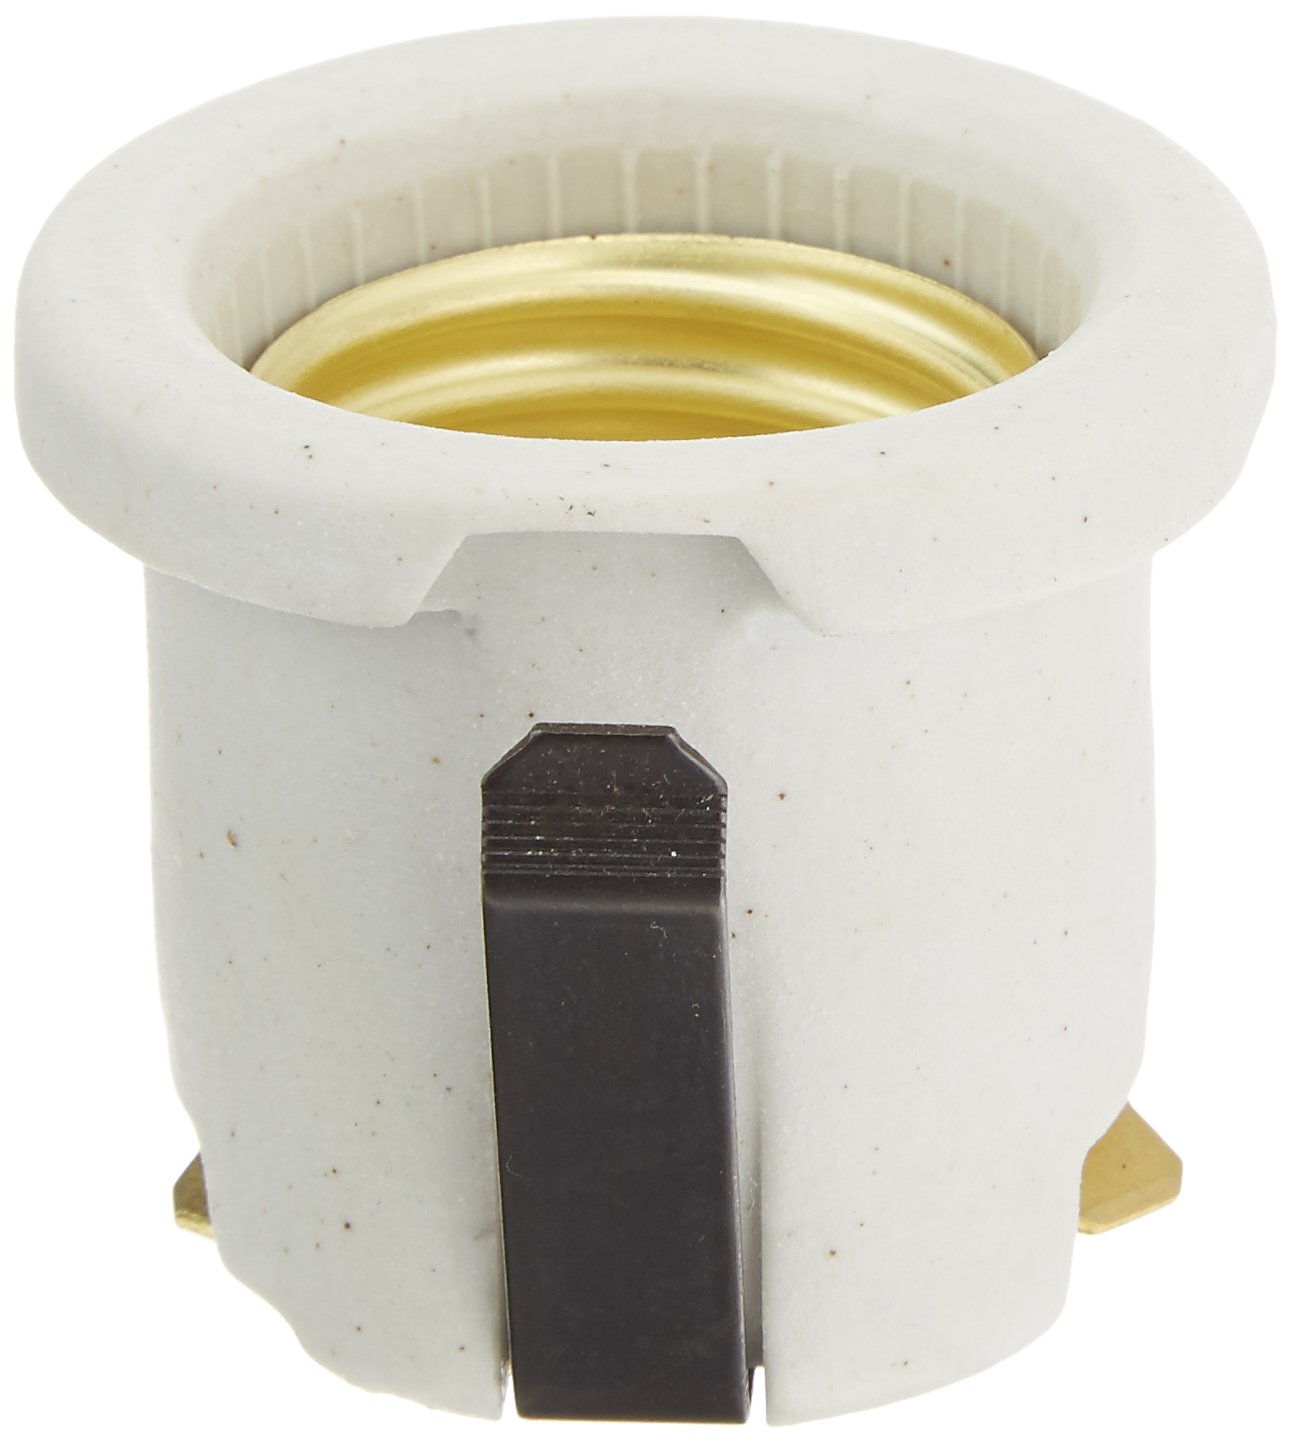 General Electric WB08T10004 Range/Stove/Oven Light Socket